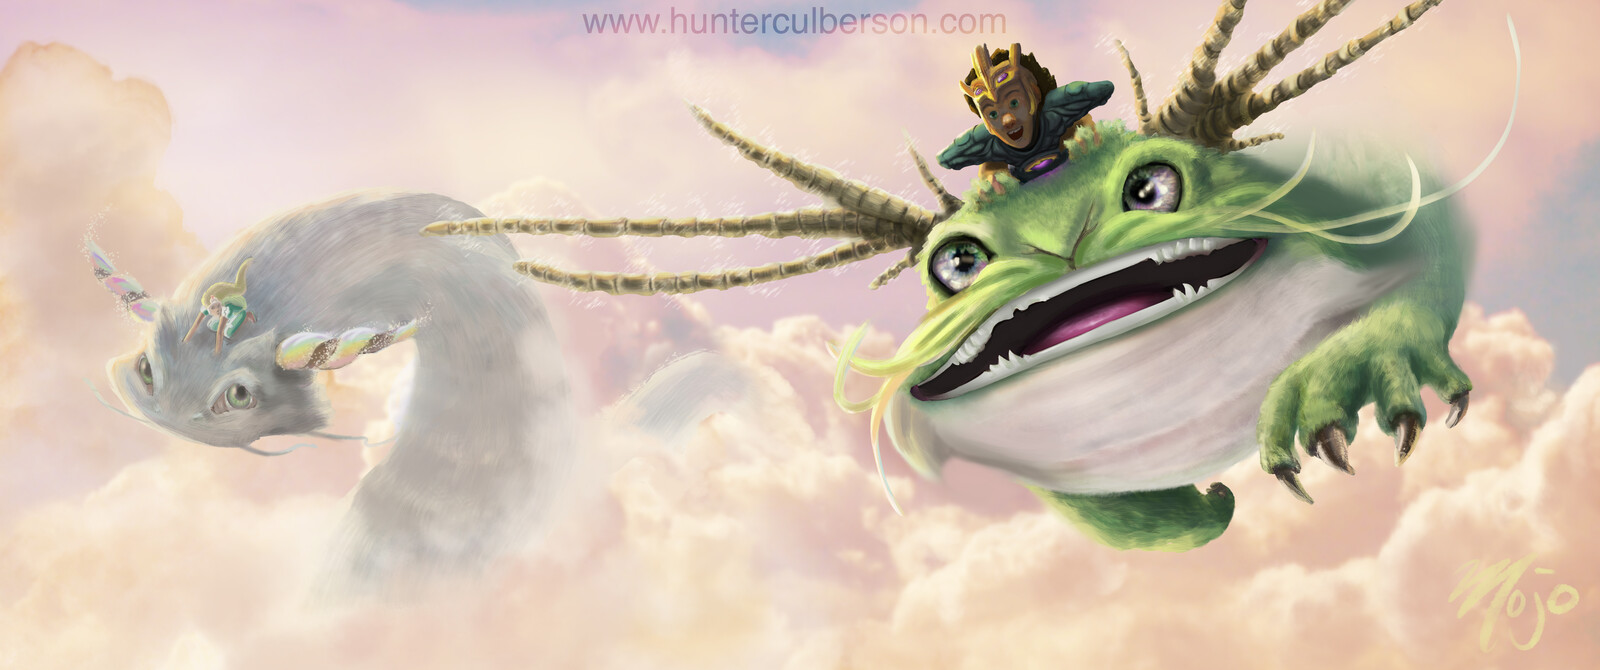 Riding Fluffy Magical Dragons